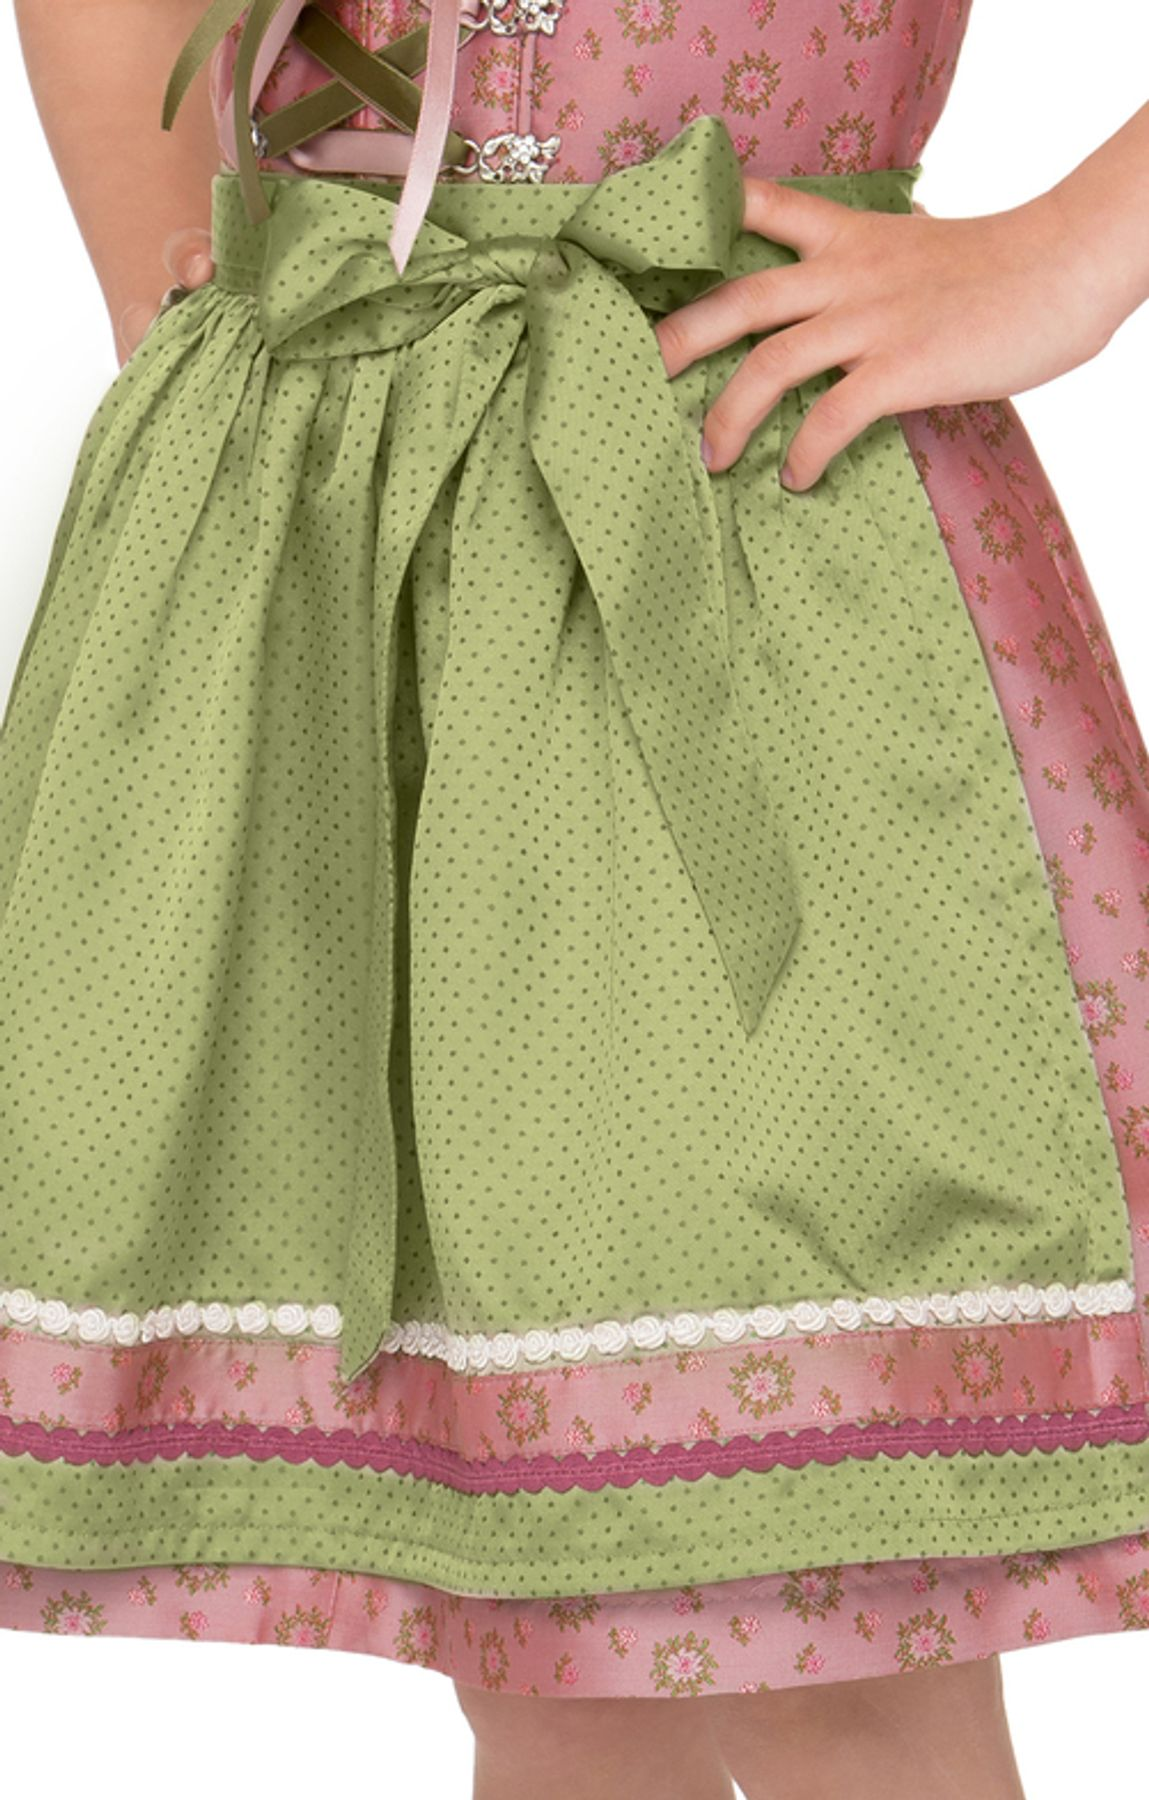 Stockerpoint - Kinder Trachten Dirndl Suki in Rose, Gr. 122-152 – Bild 5